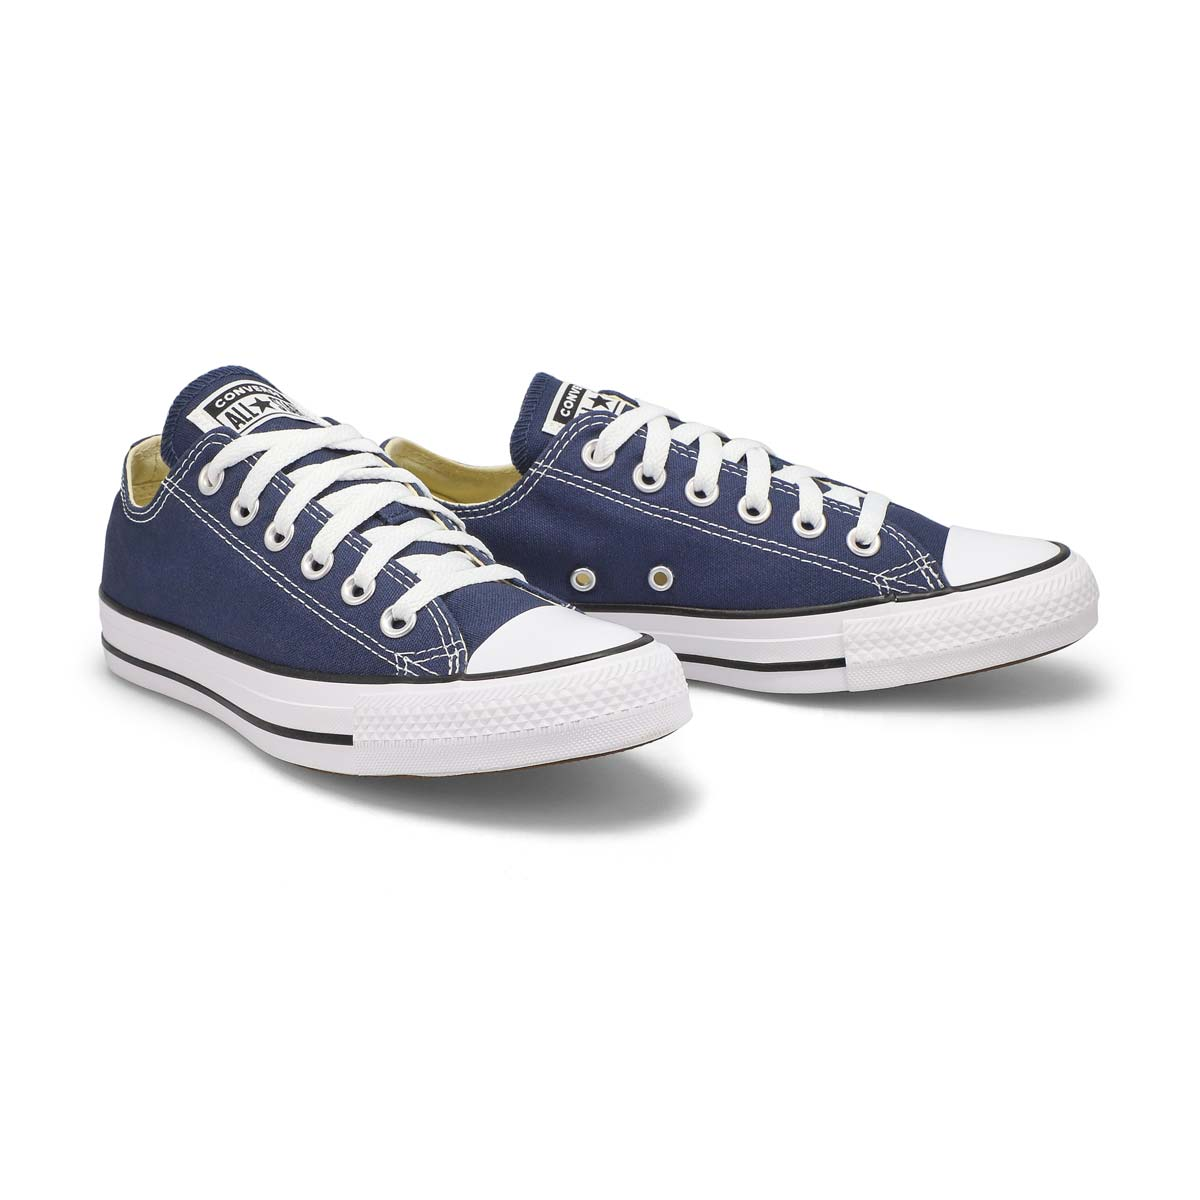 Lds CT All Star Core Ox navy sneaker